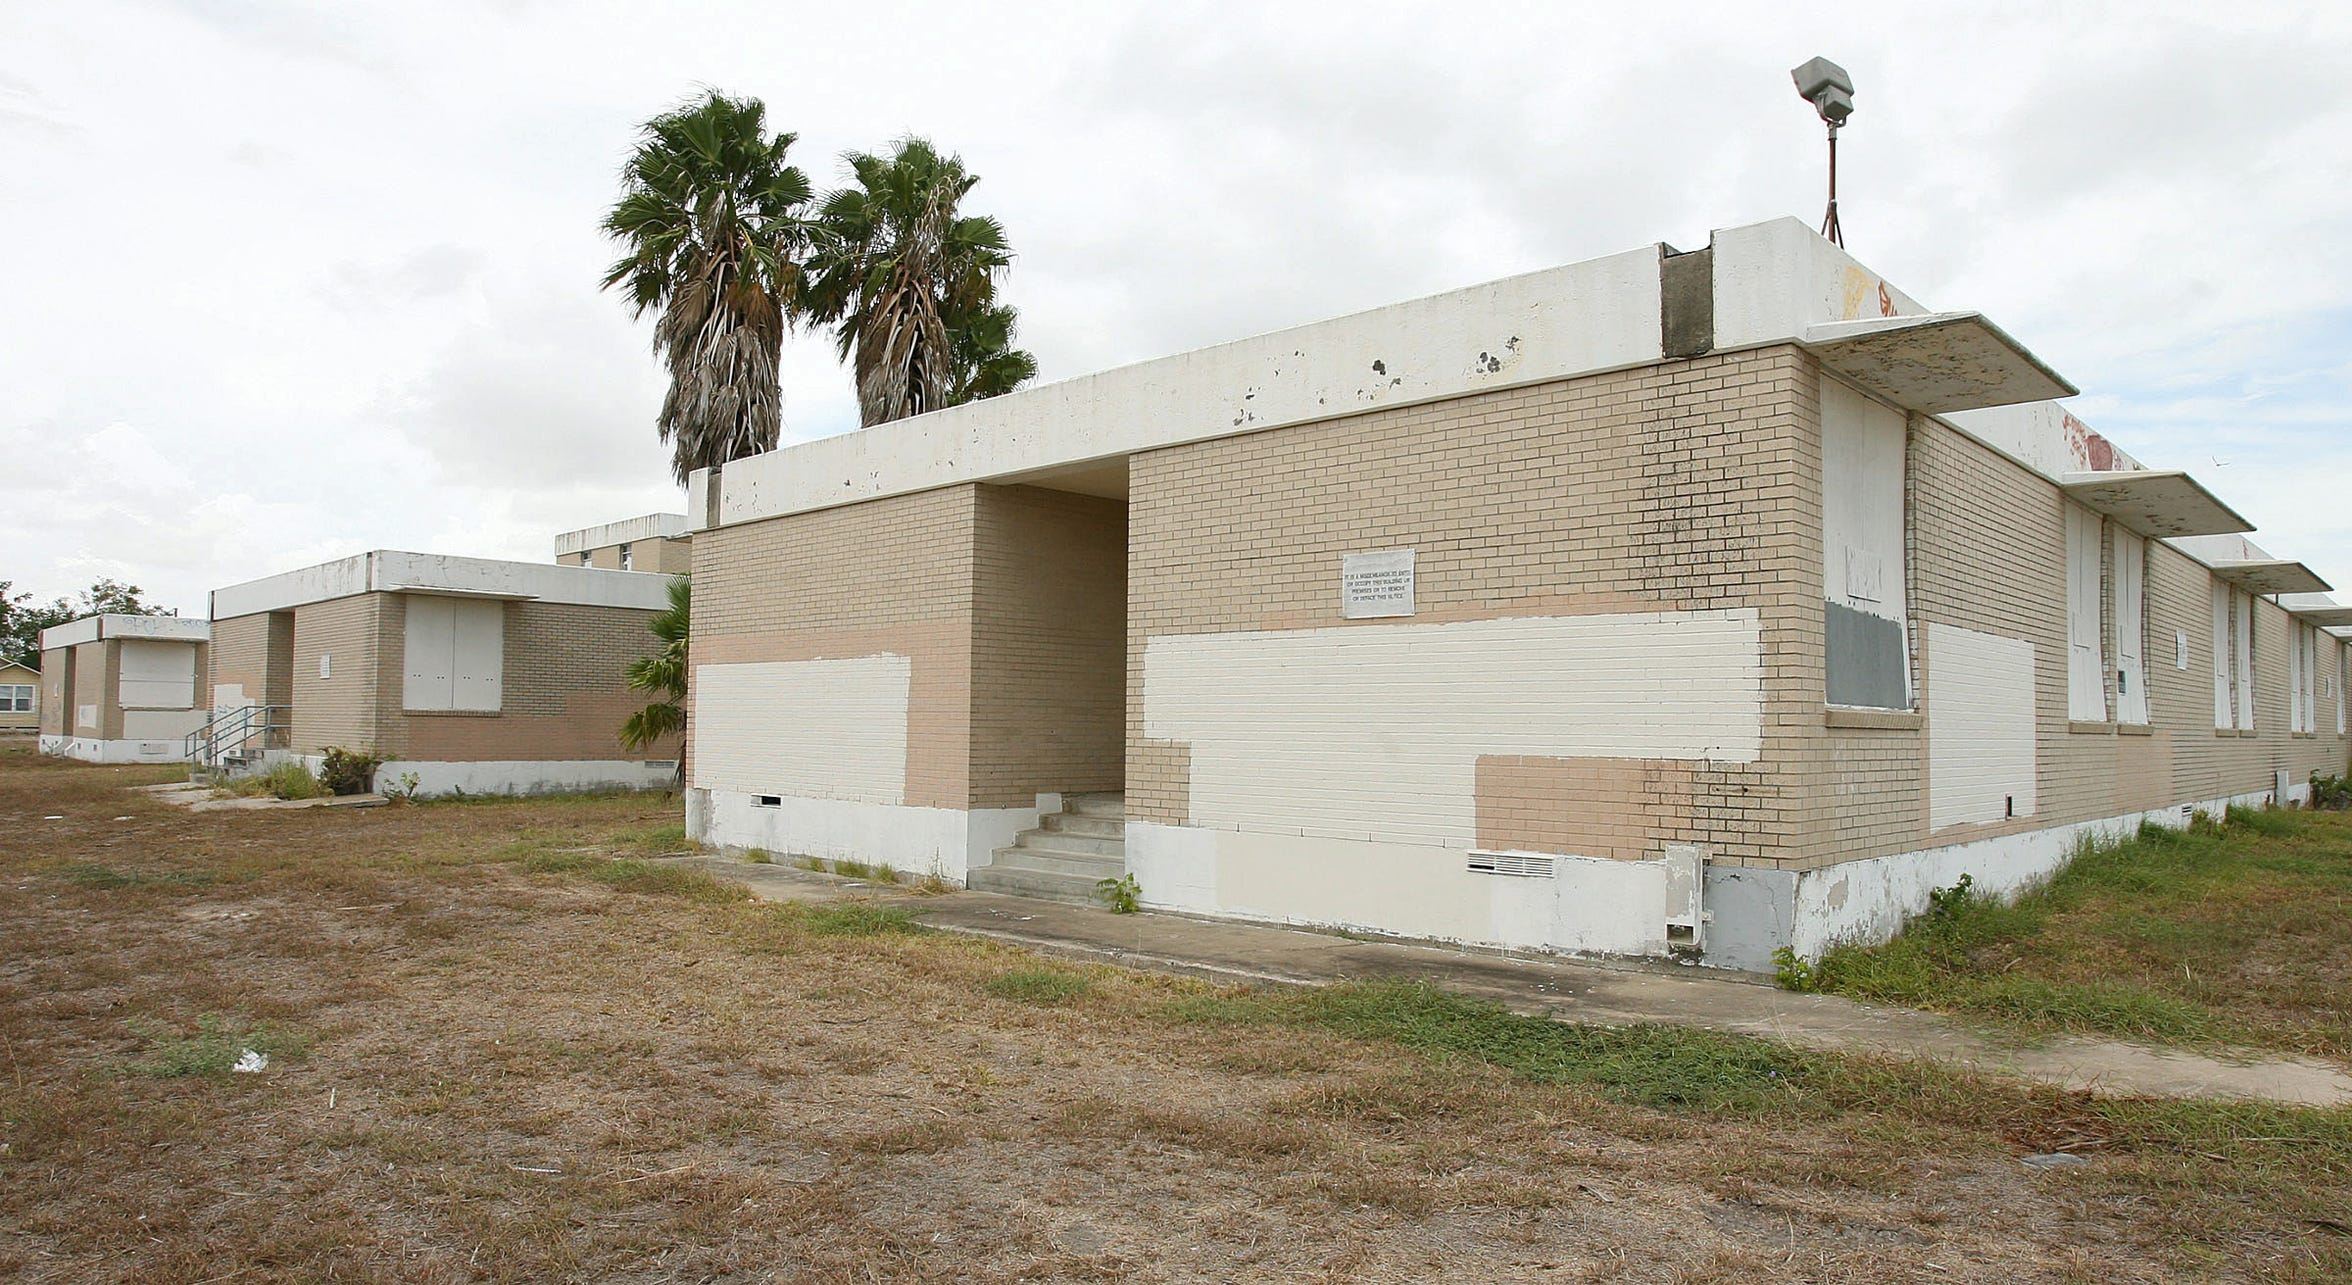 The Corpus Christi Osteopathic Hospital closed in 1990. The building, pictured here in 2009, was eventually purchased by Del Mar College and demolished in 2013.